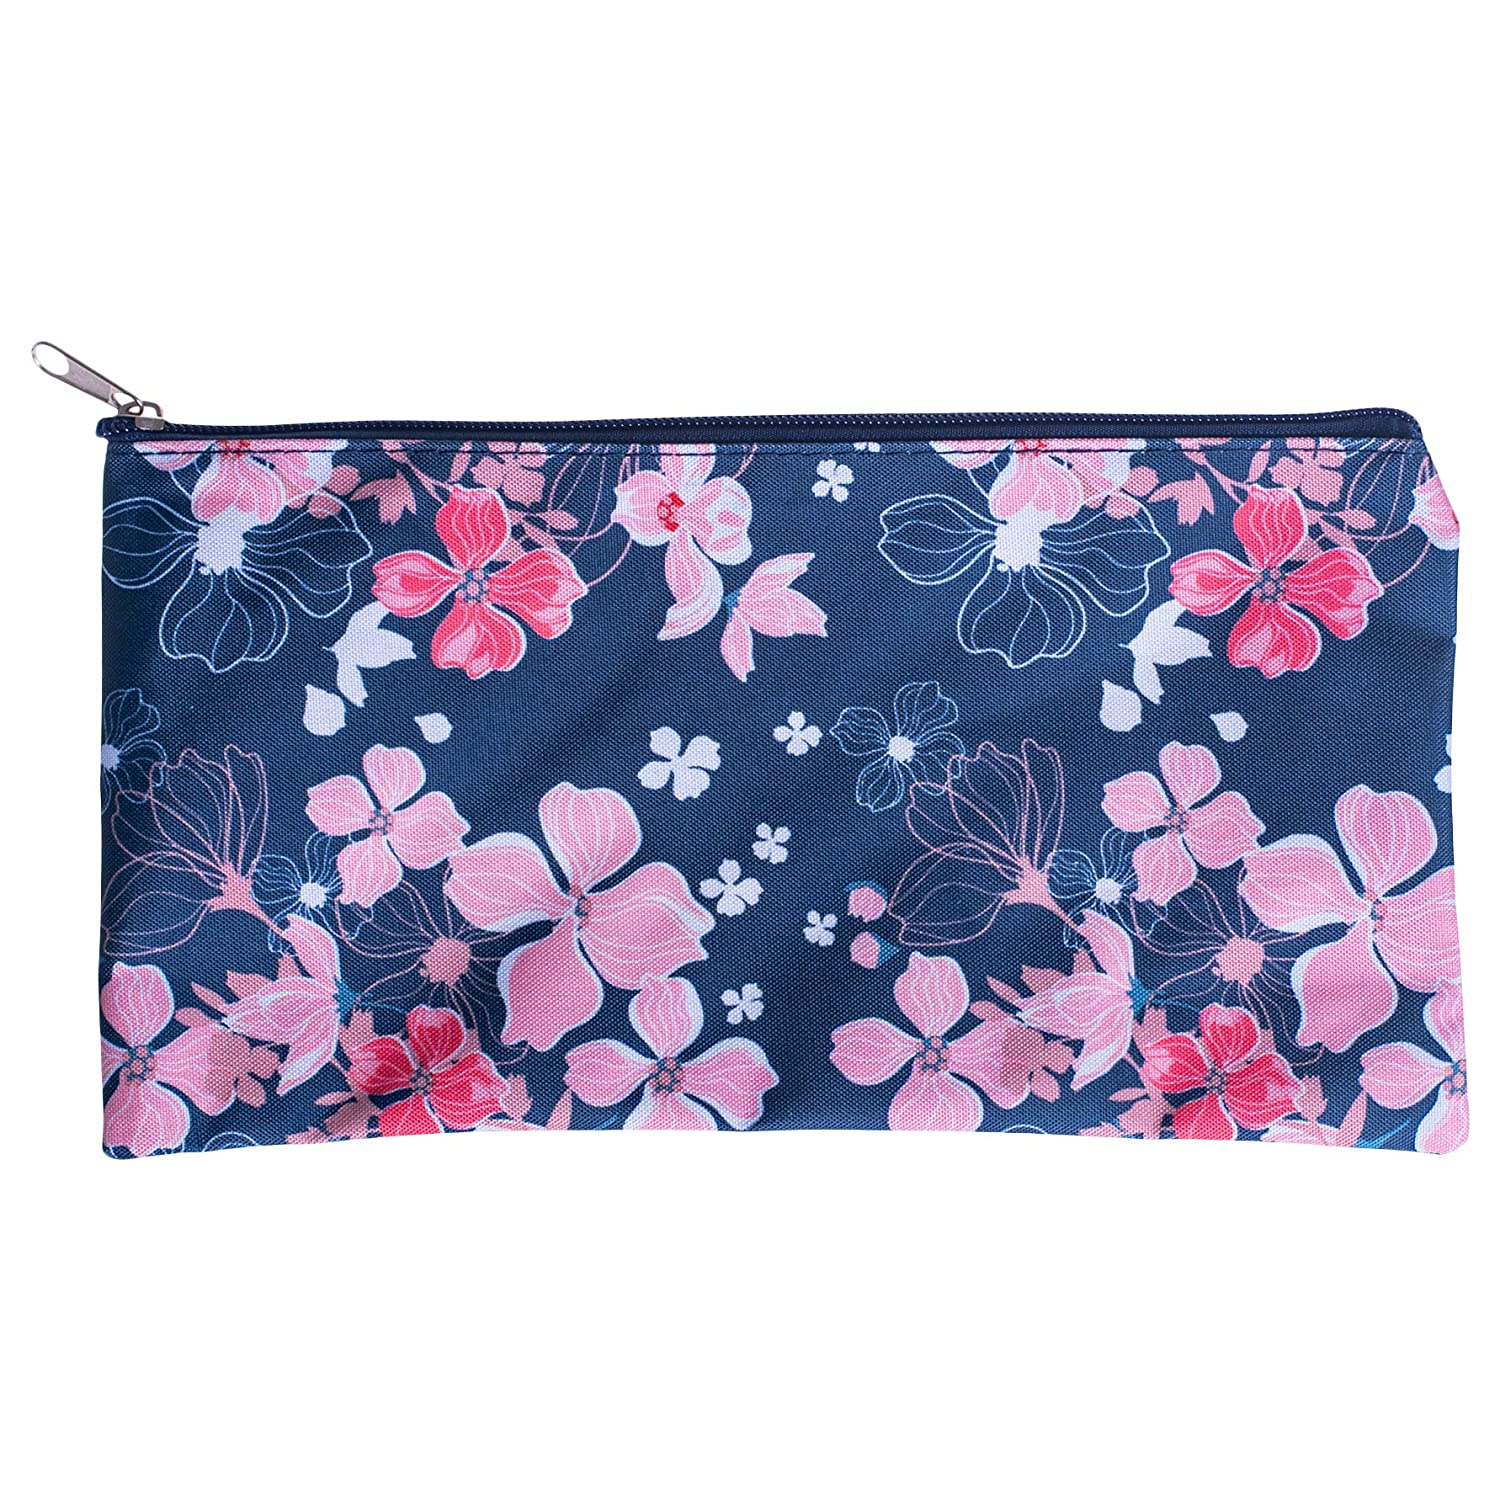 Pencil Case Zippered Navy Pink Flower 10 x 6 Microfiber Fabric Cosmetic Bag